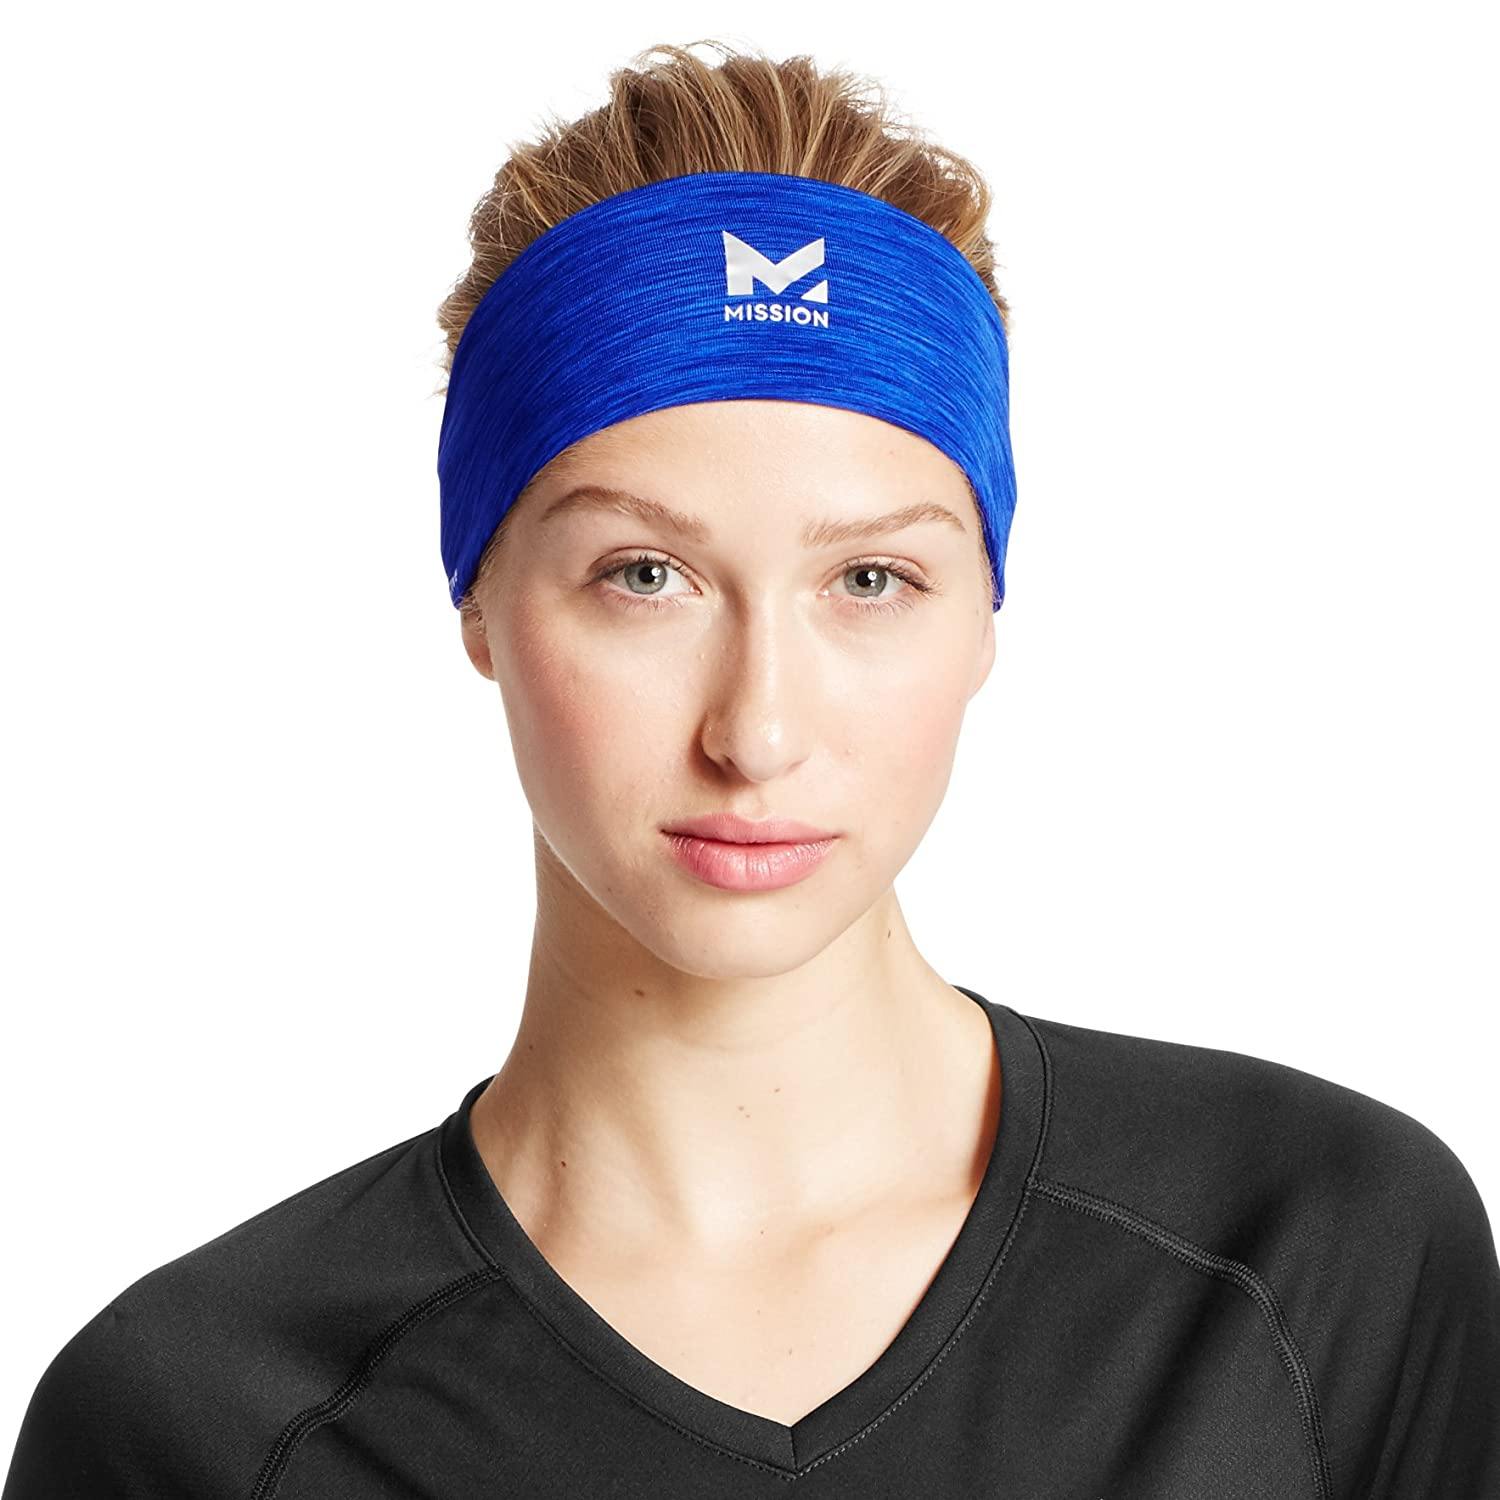 Mission VaporActive Cooling Lockdown Headband Graffiti Multi High Vis Coral One Size Mission Athlete Care 109059-P